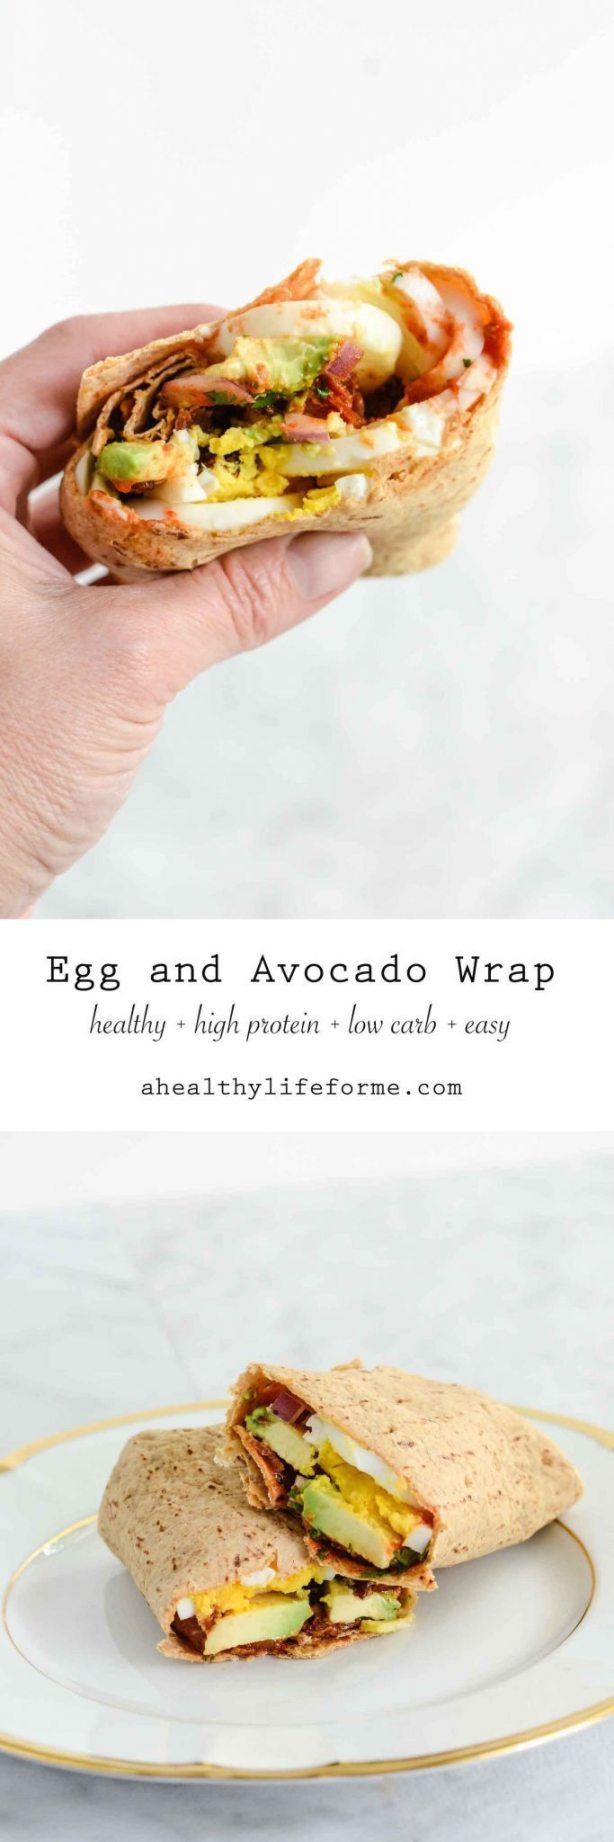 Egg and Avocado Wrap Low Carb High Protein Recipe | ahealthylifeforme.com